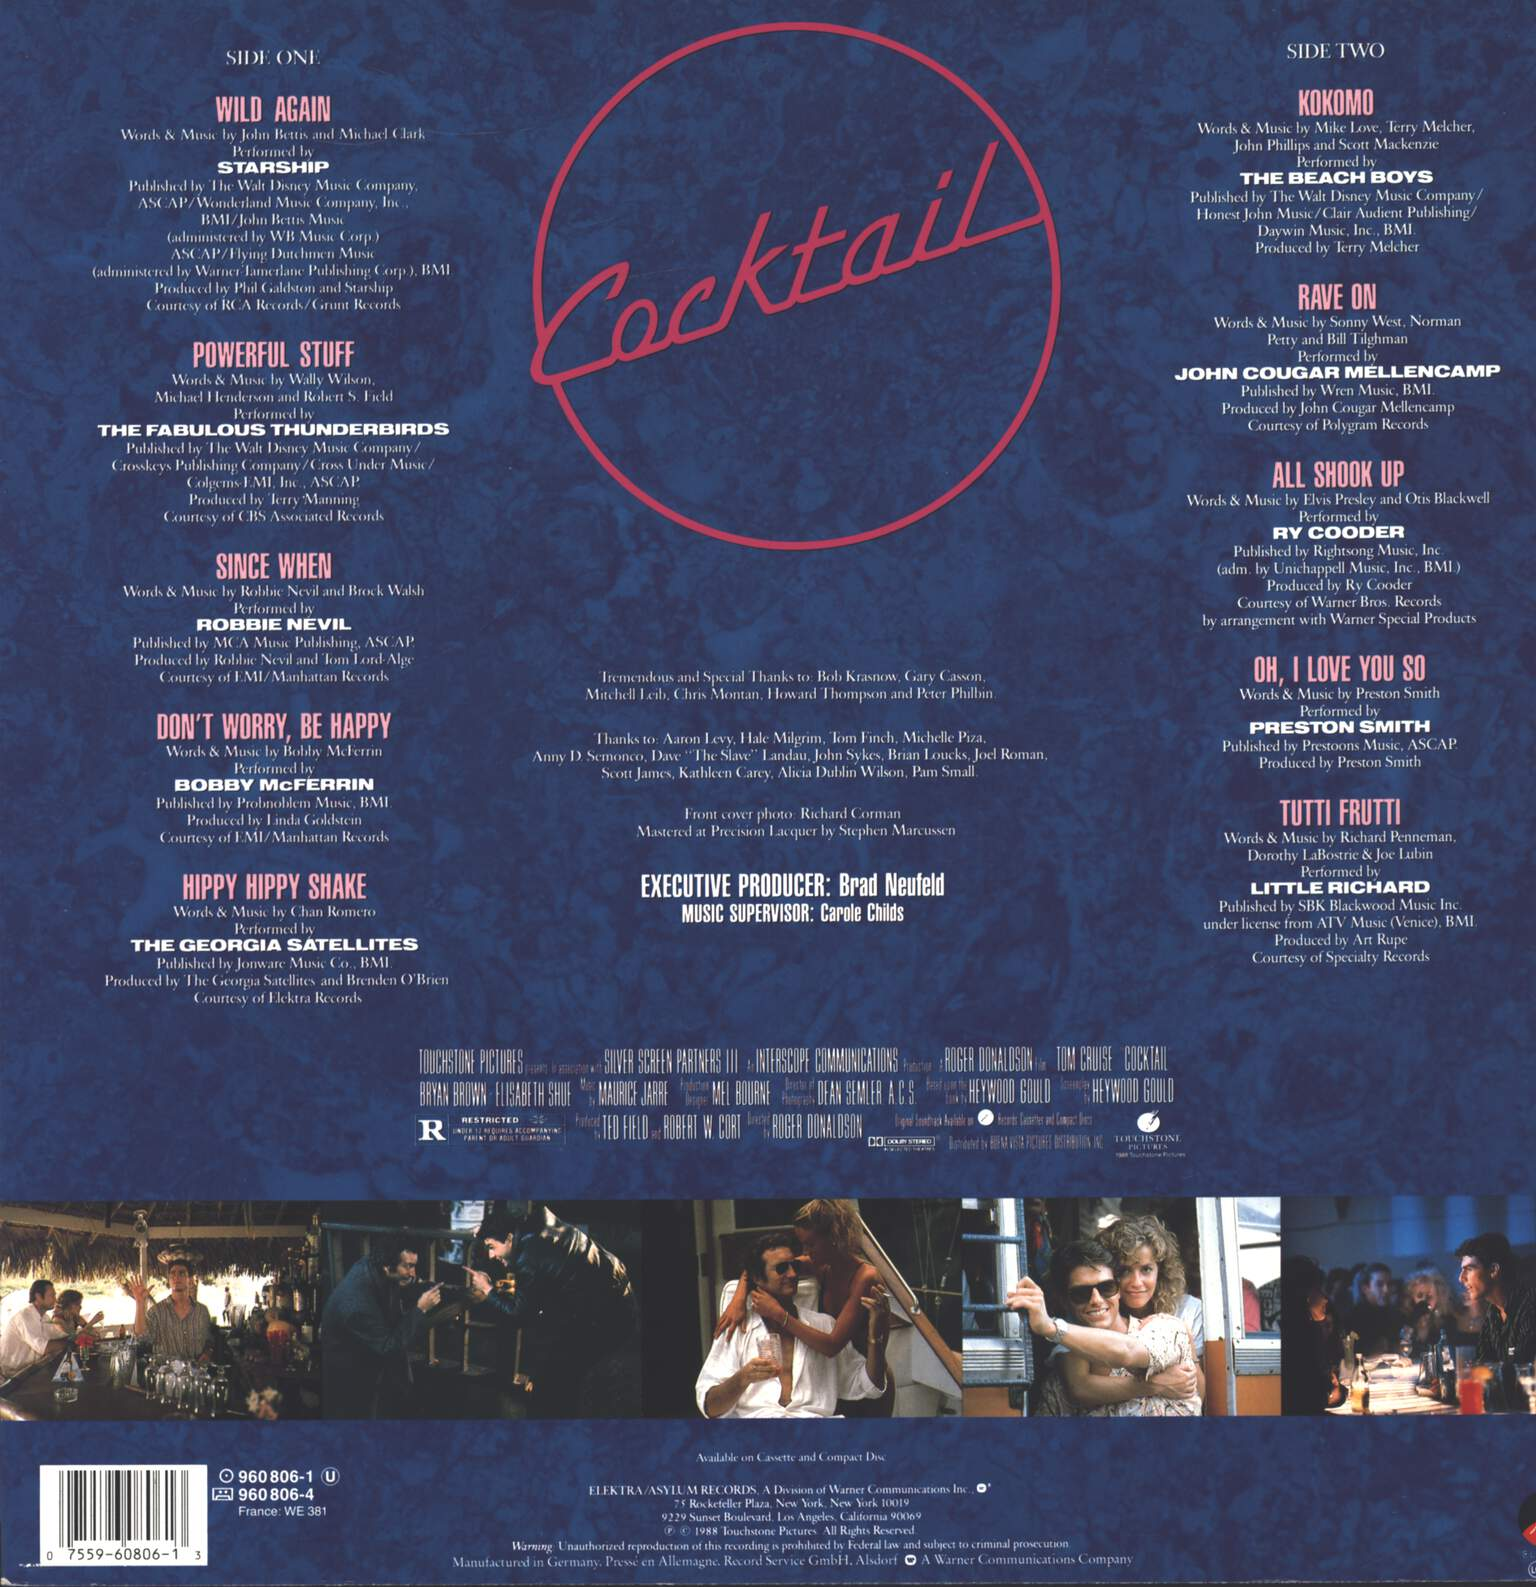 Various: Cocktail - Original Motion Picture Soundtrack, LP (Vinyl)